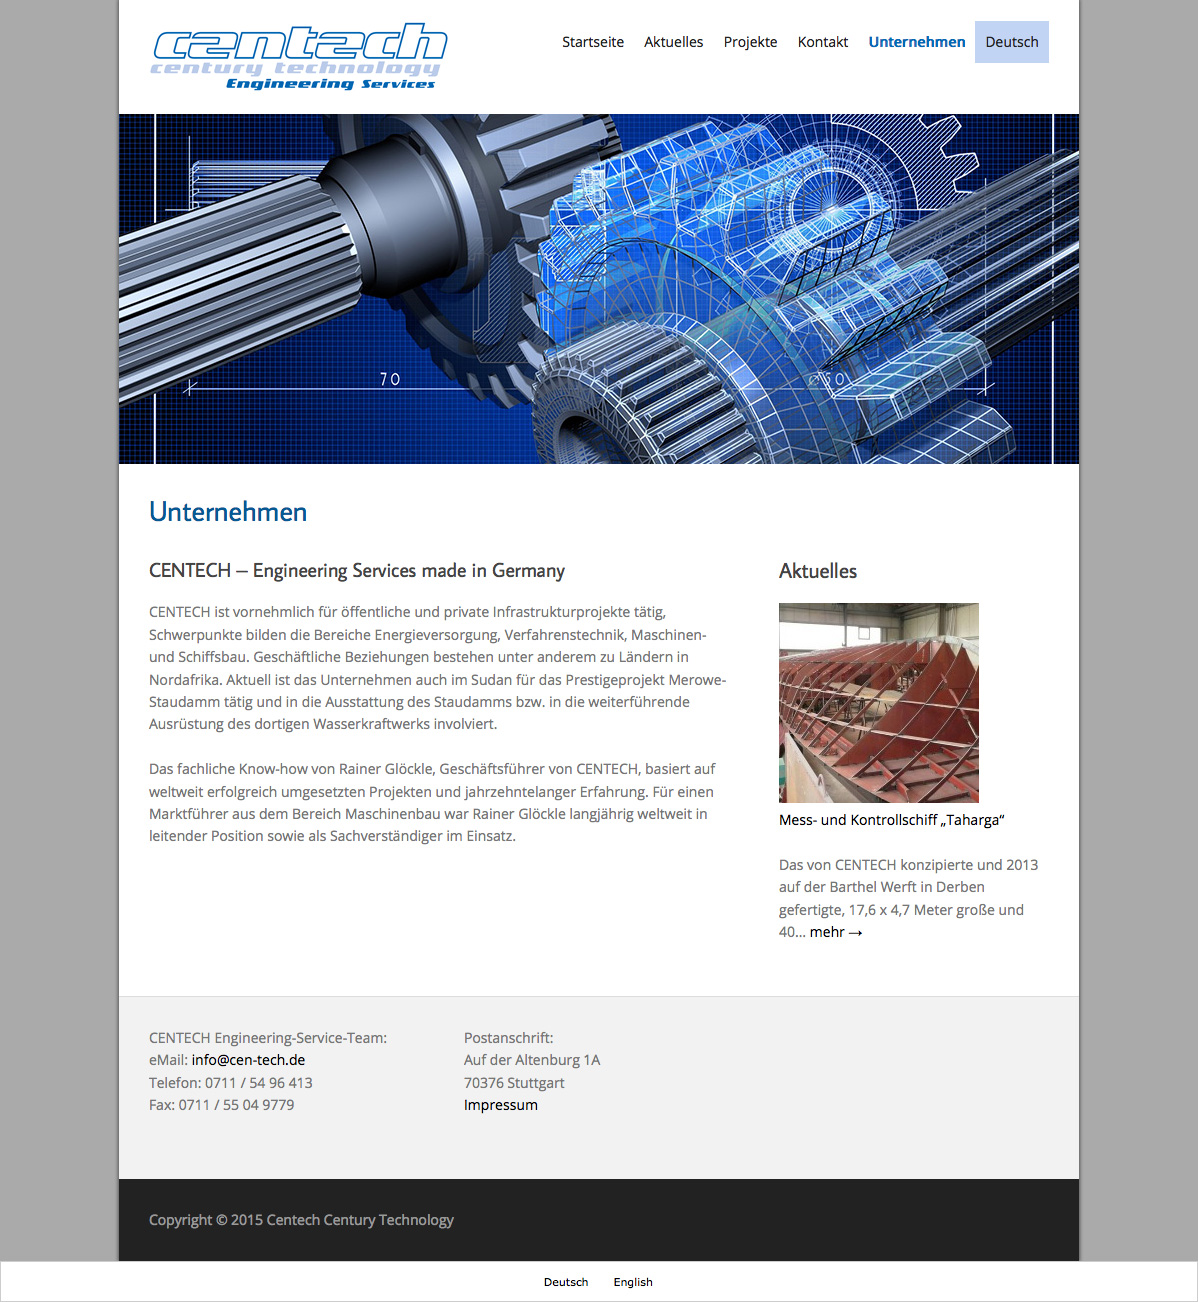 centech Engineering Services